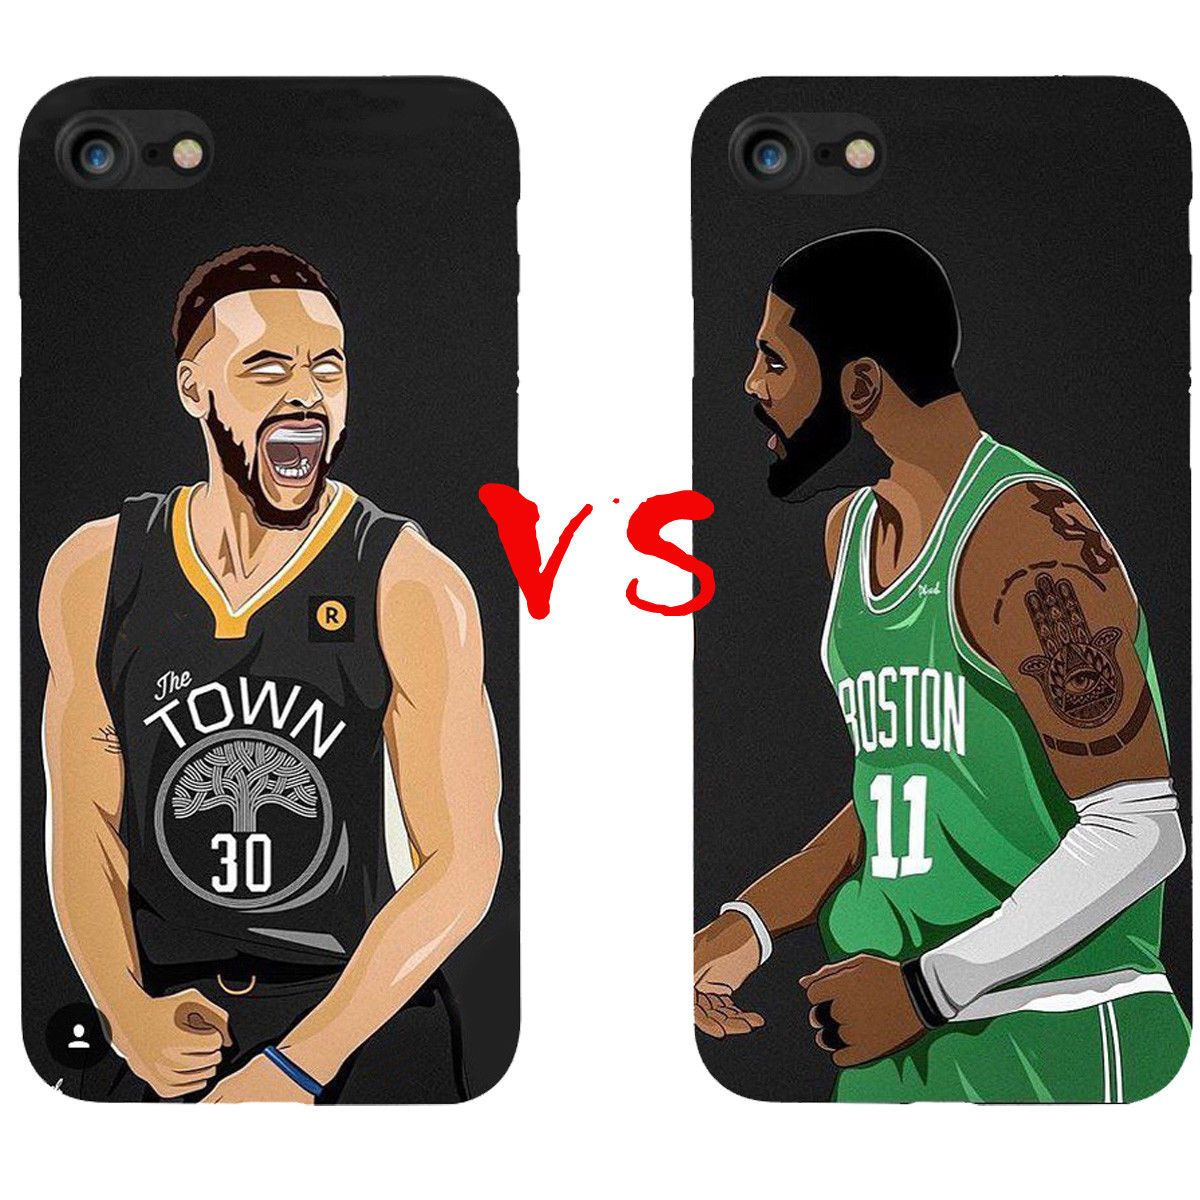 b6e2ed1d8a195 Details about Kyrie Irving VS Stephen Curry Silicone Case For iphone ...